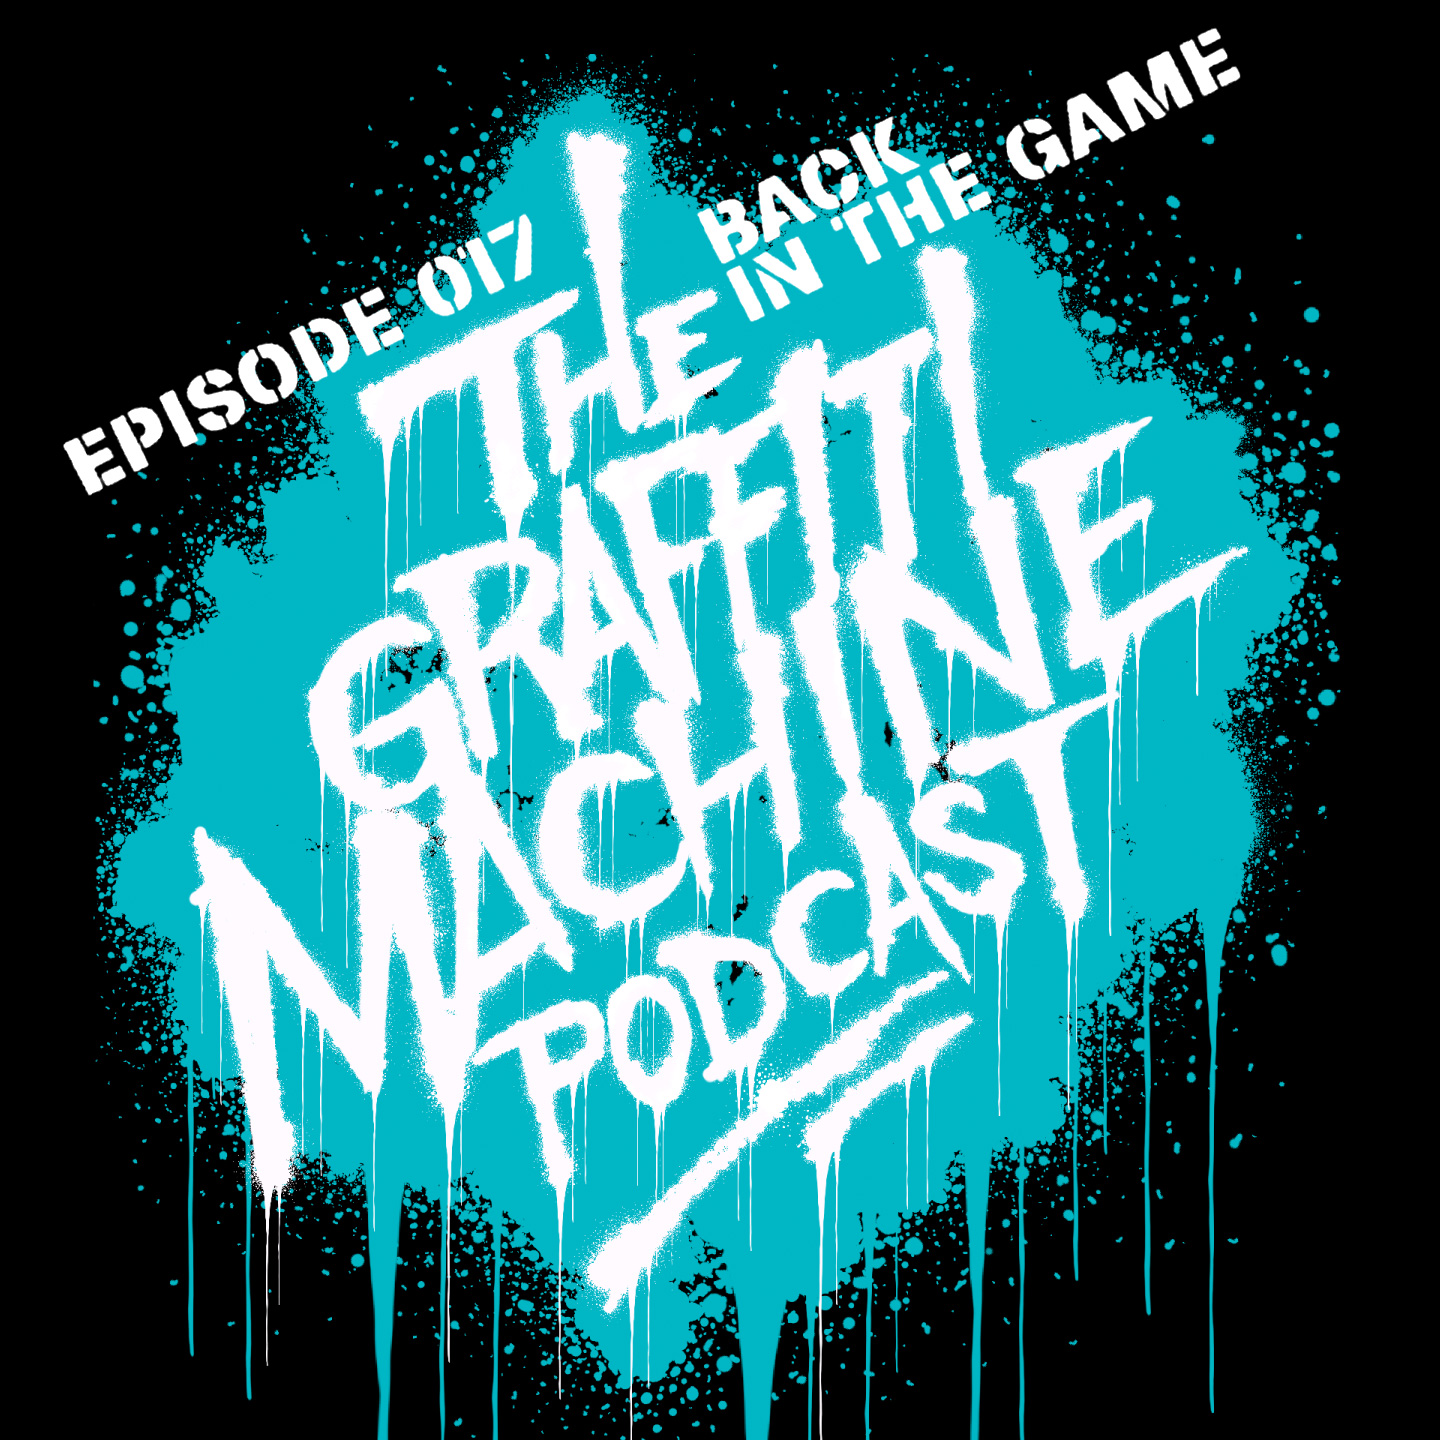 017: Back in the Game